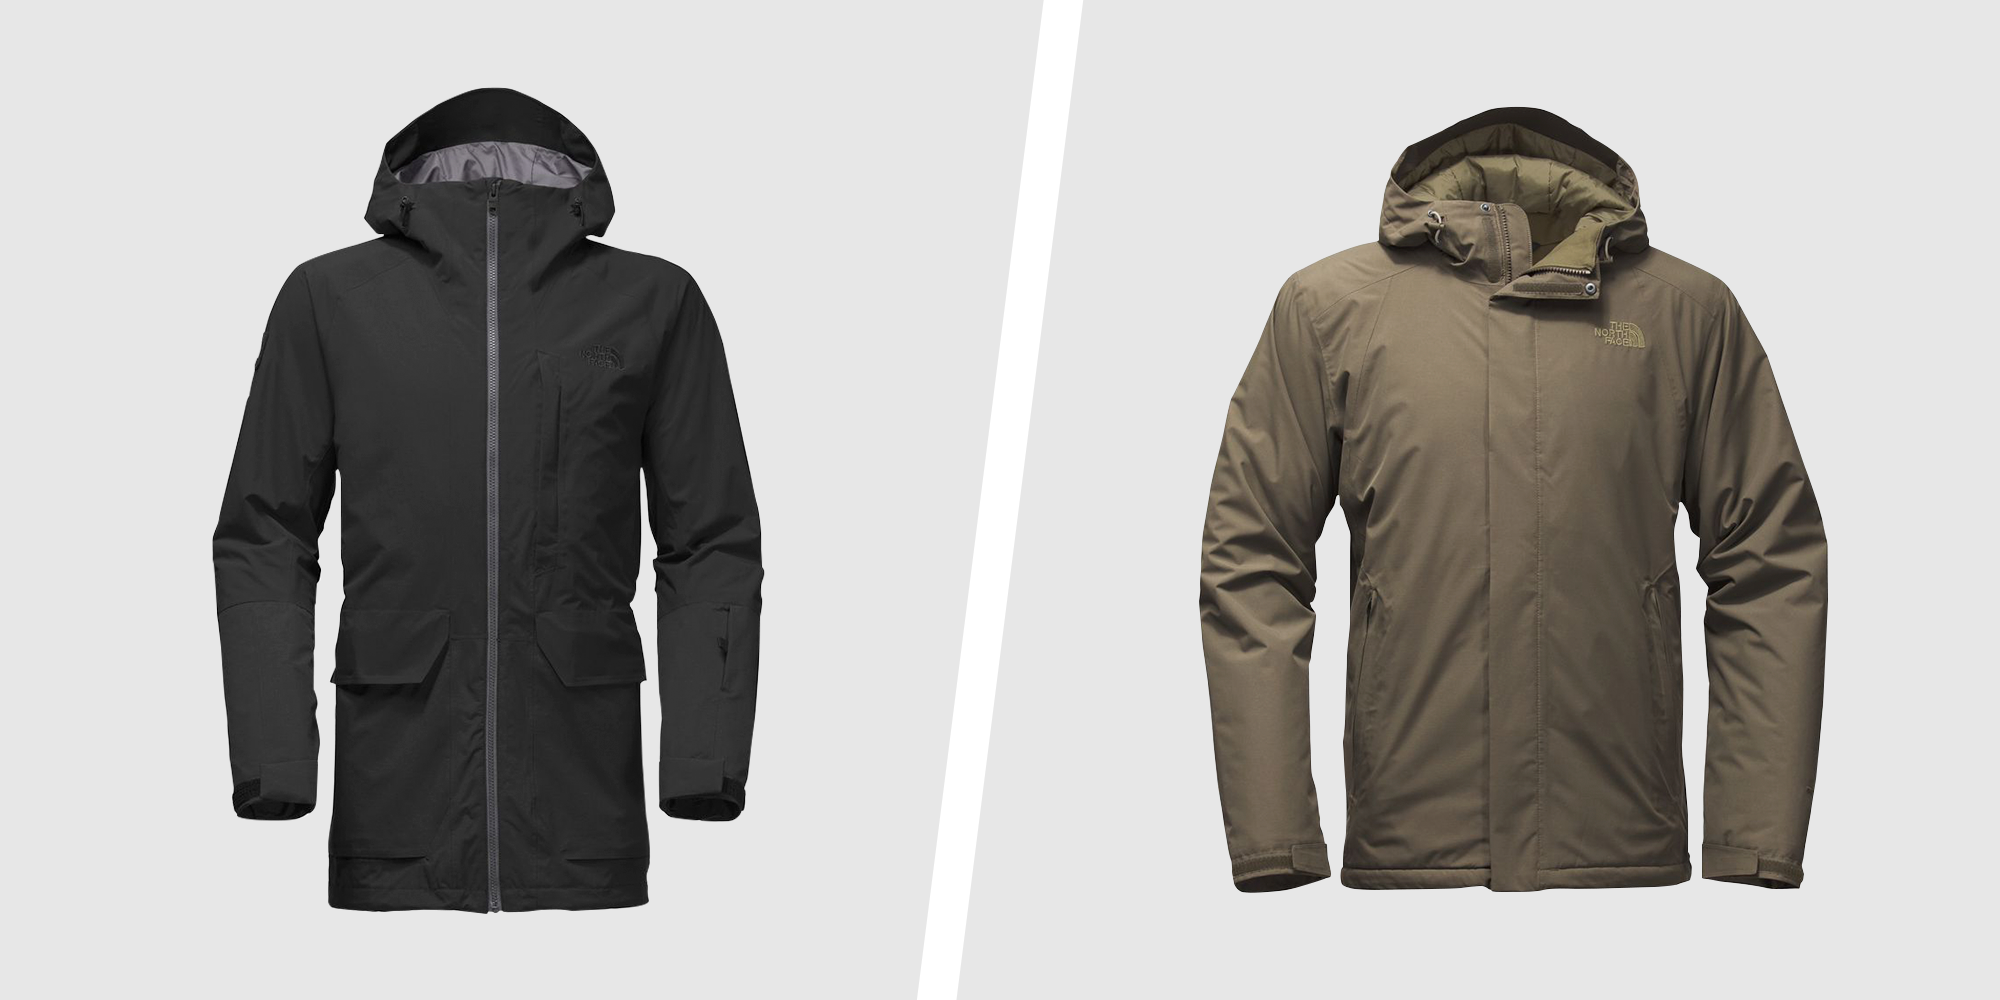 North Face Jackets Are On Sale for Over 50% Off